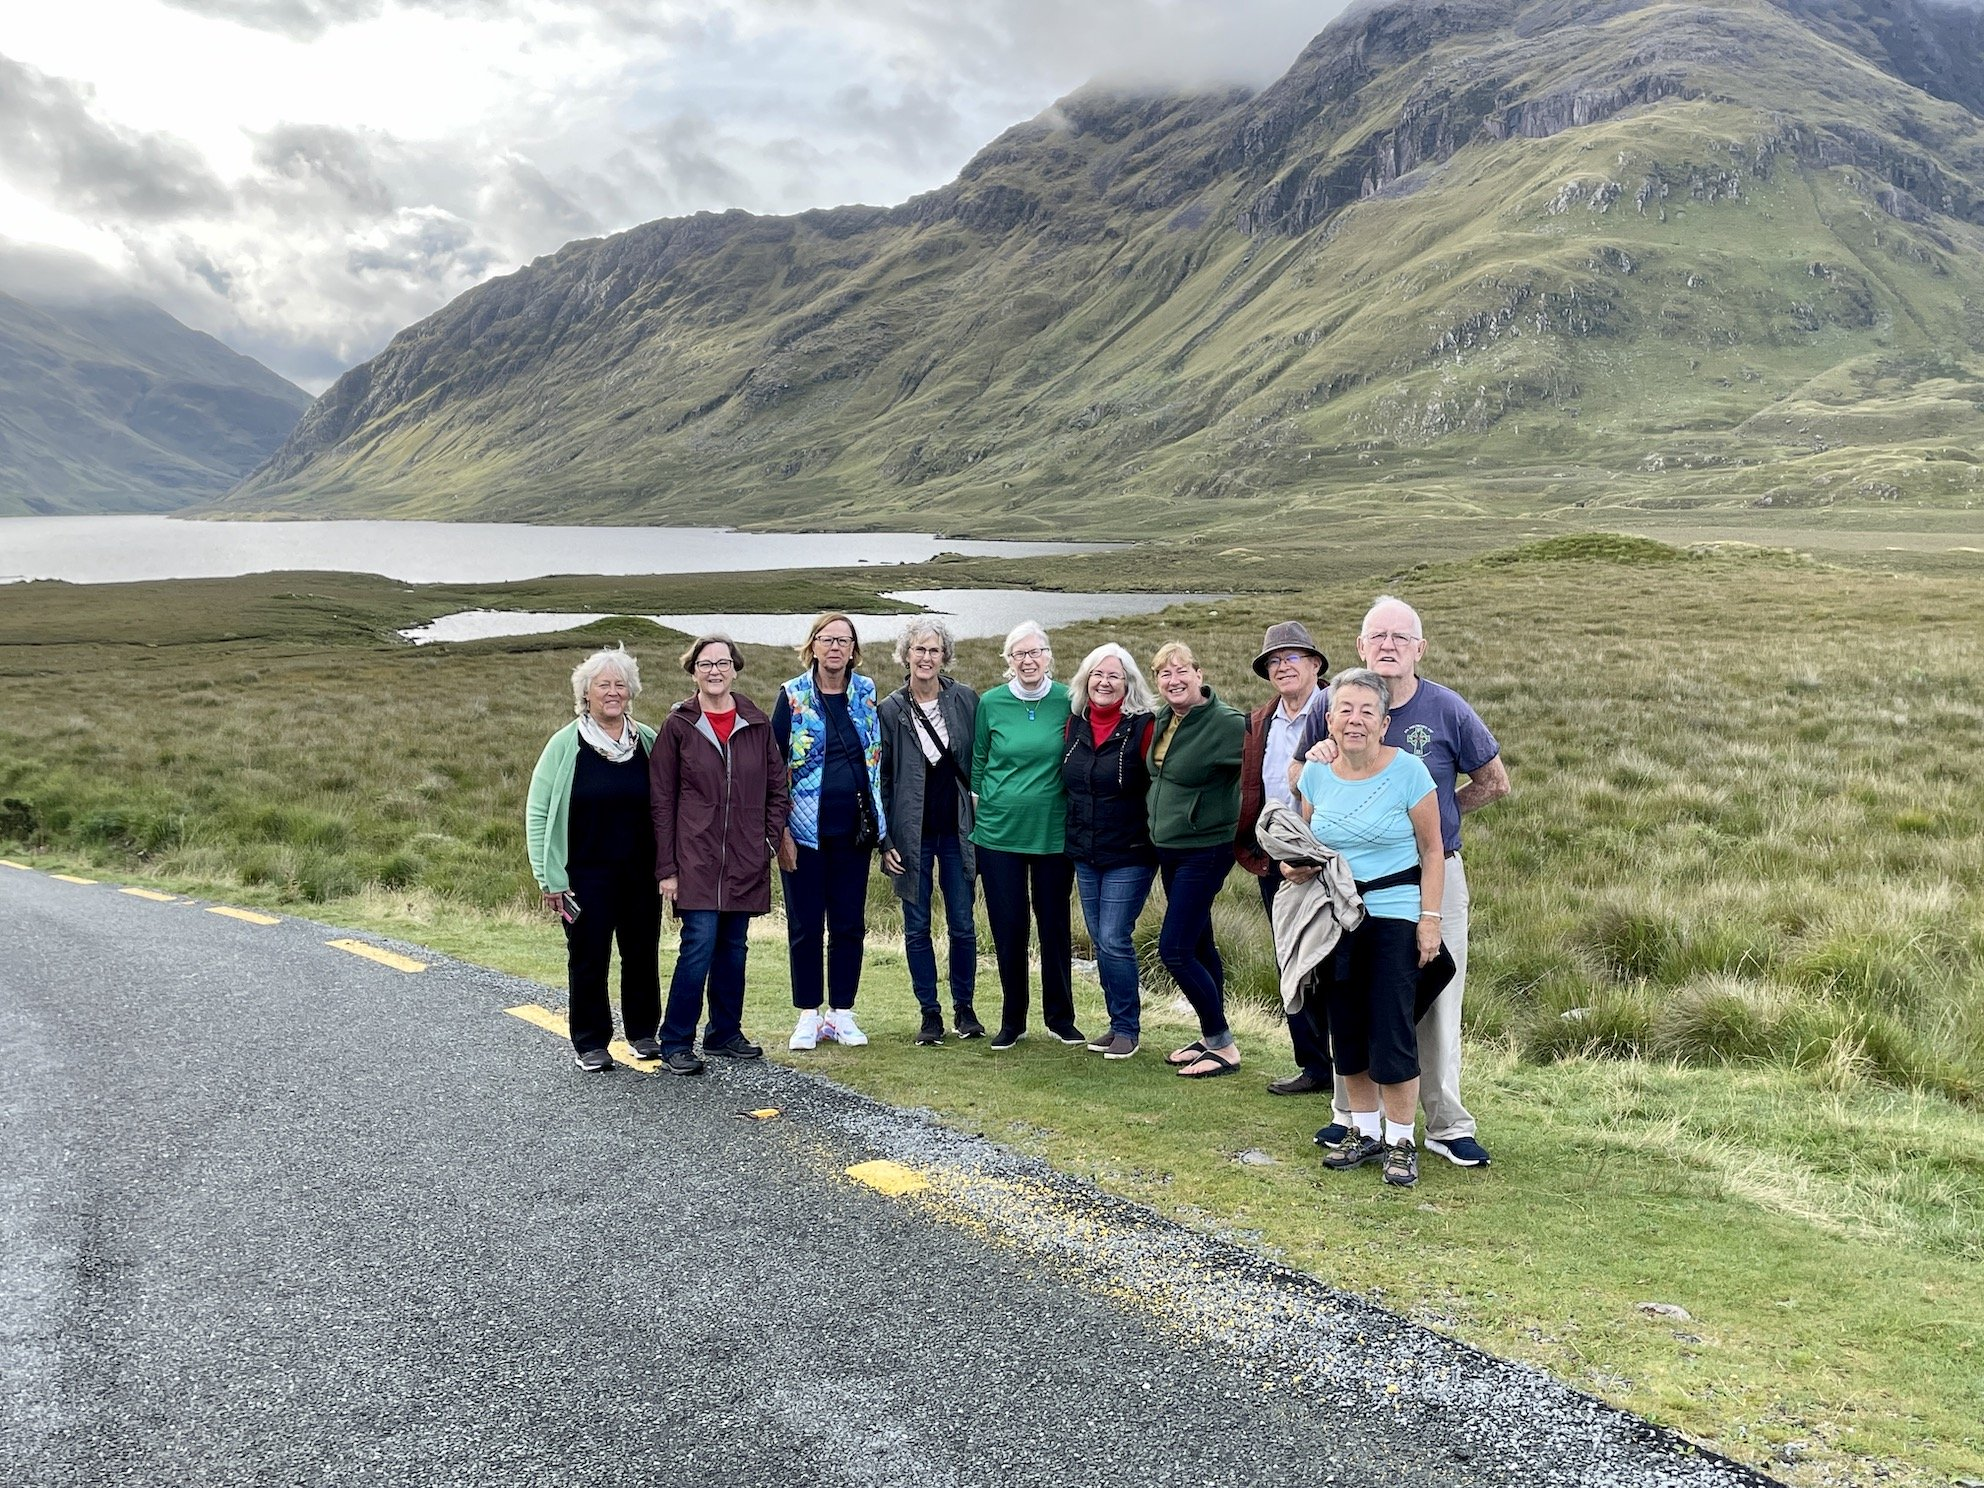 September 2021 Classic Tour Group, Doolough, County Mayo